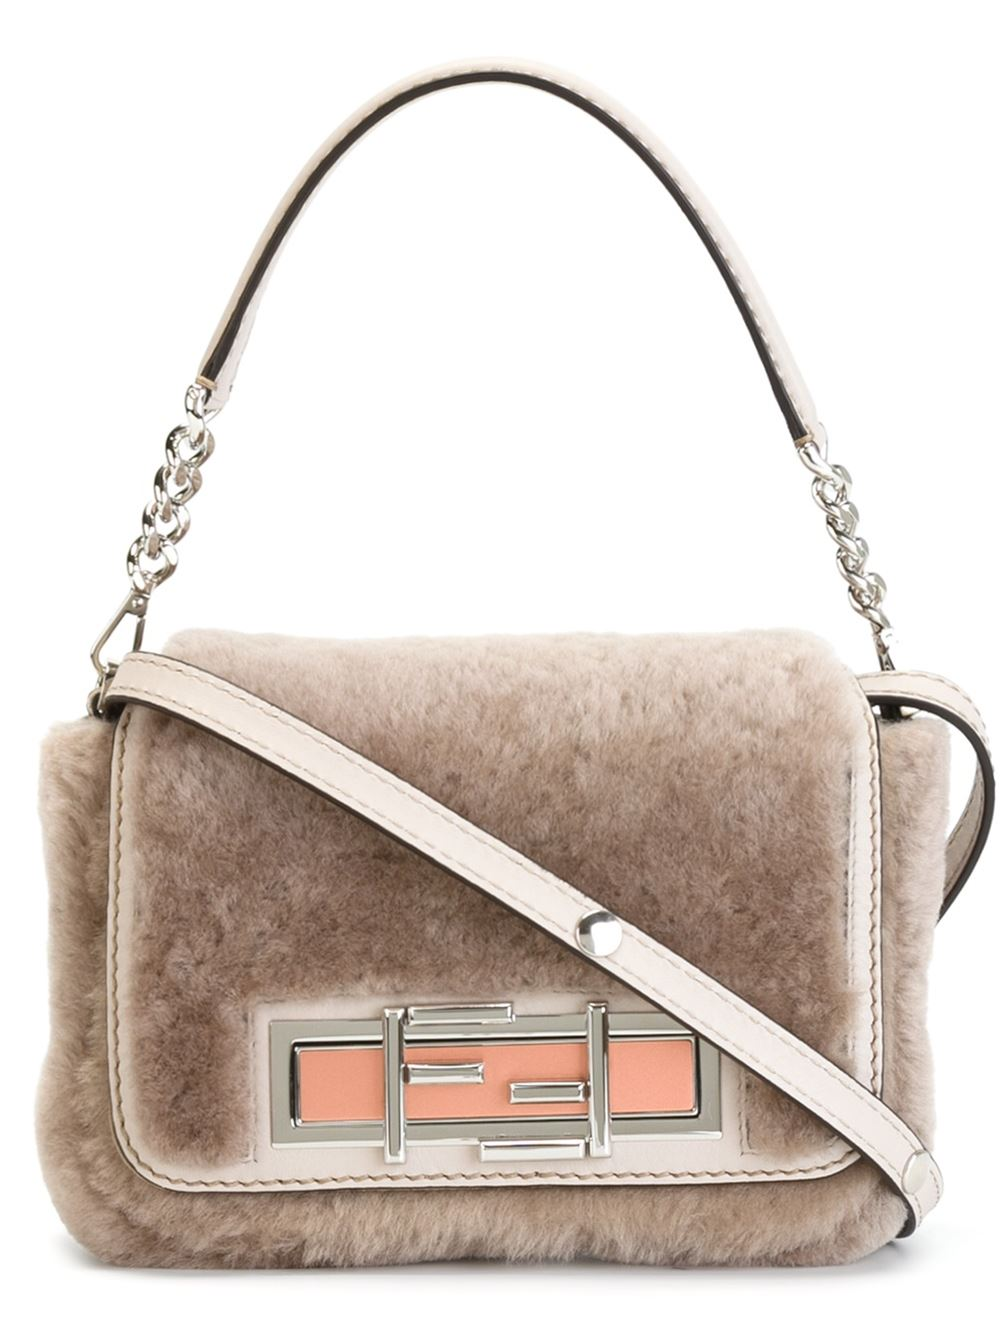 3 Baguette shoulder bag, £1,960, Fendi. www.farfetch.com